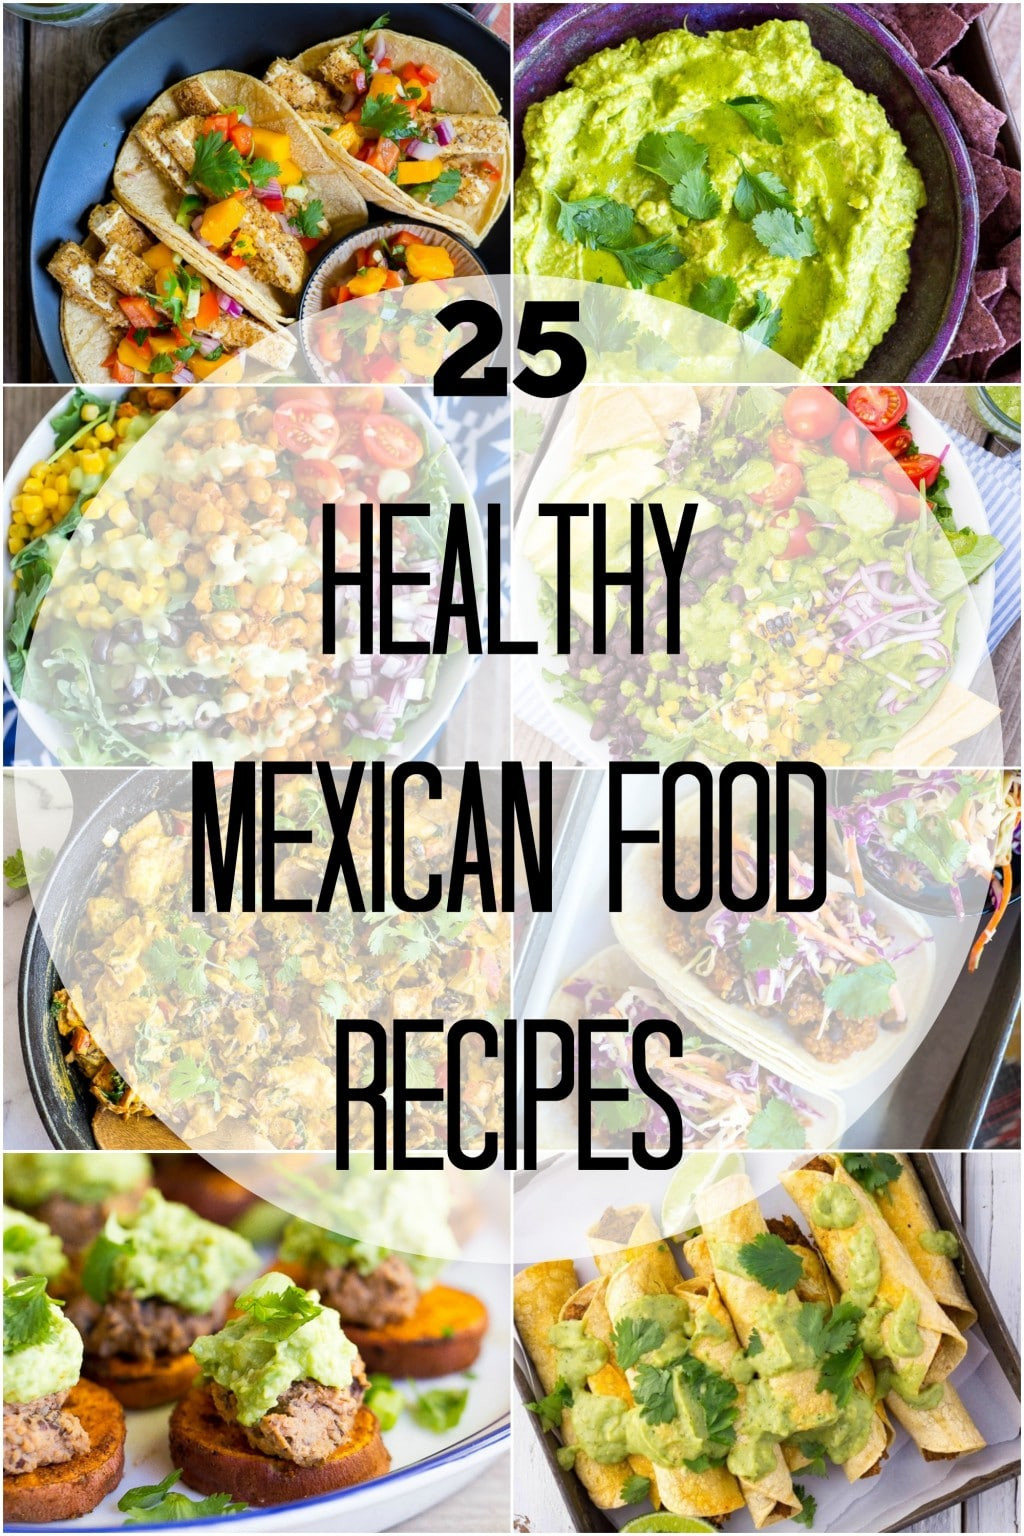 Healthy Mexican Recipes  25 Healthy Mexican Food Recipes She Likes Food